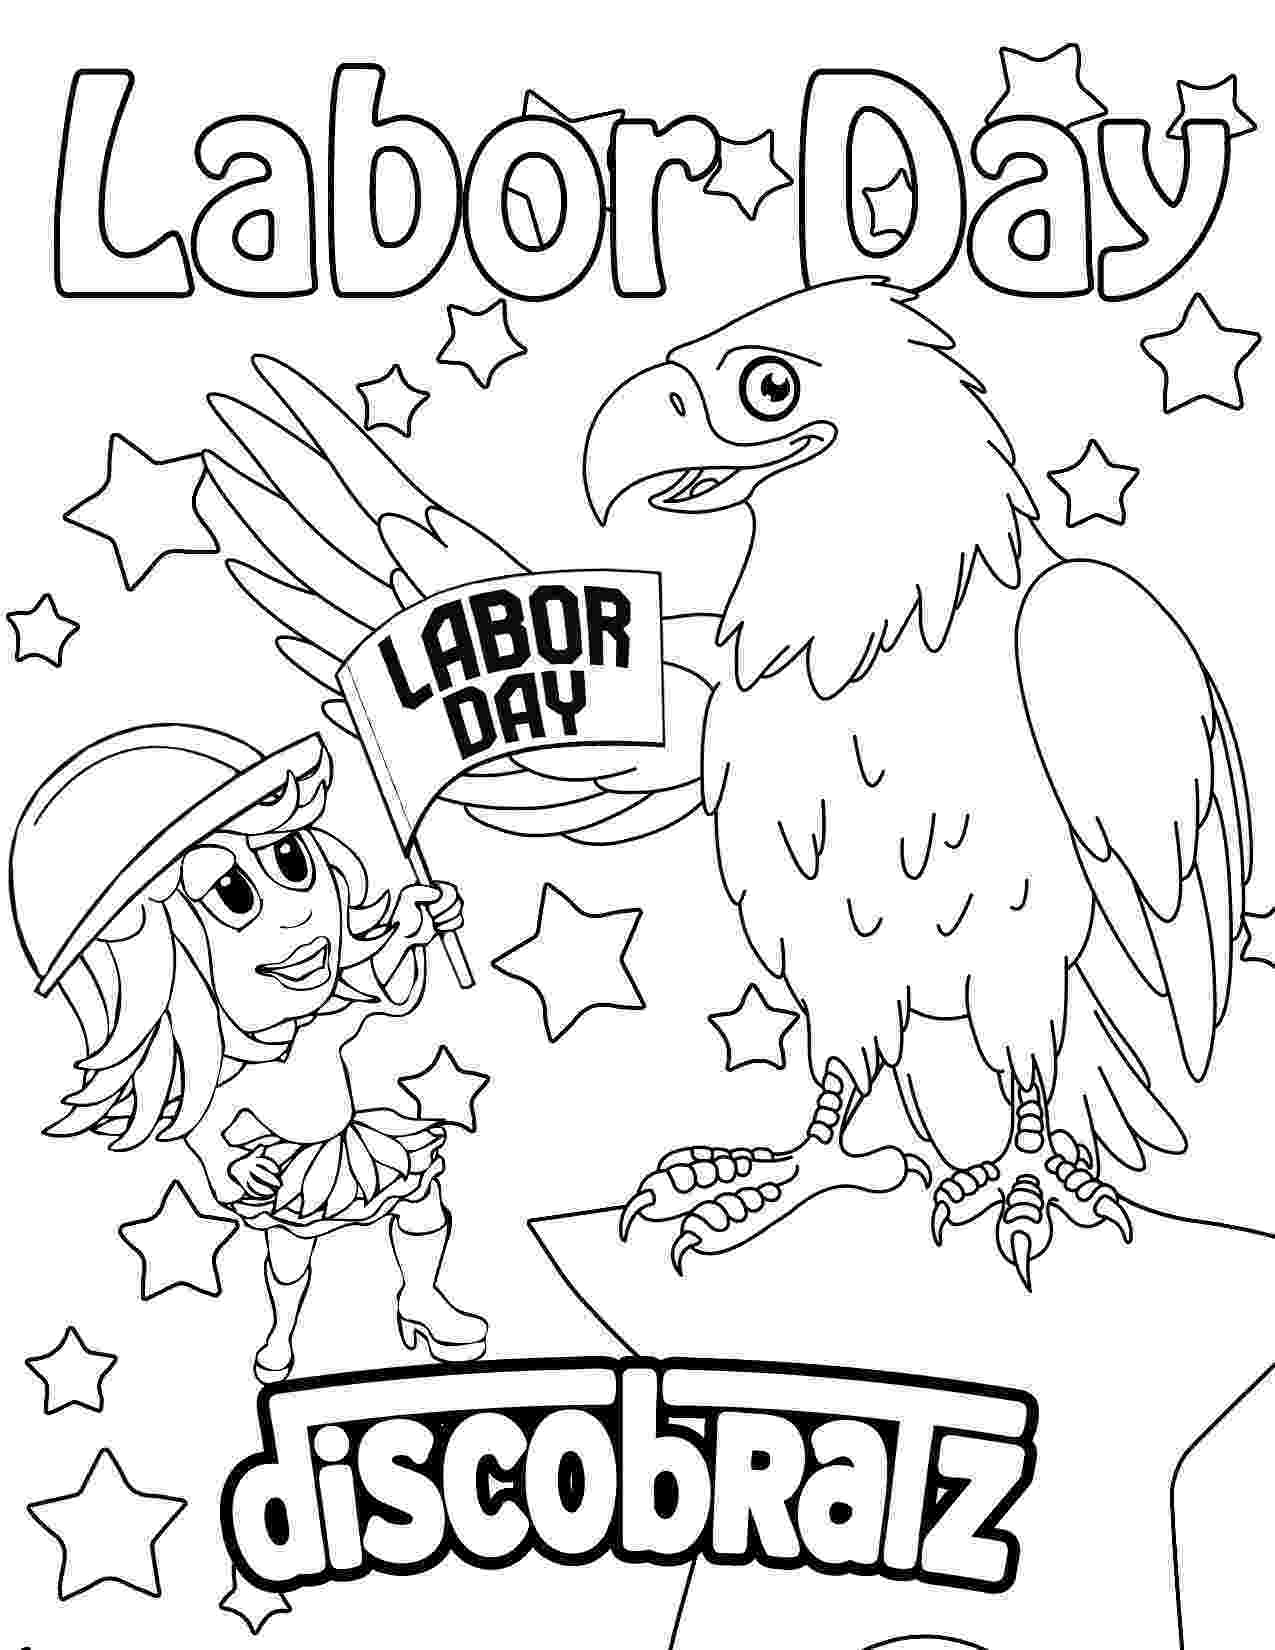 labor day coloring pages free printable happy labor day coloring page free printable coloring pages labor free pages coloring day printable